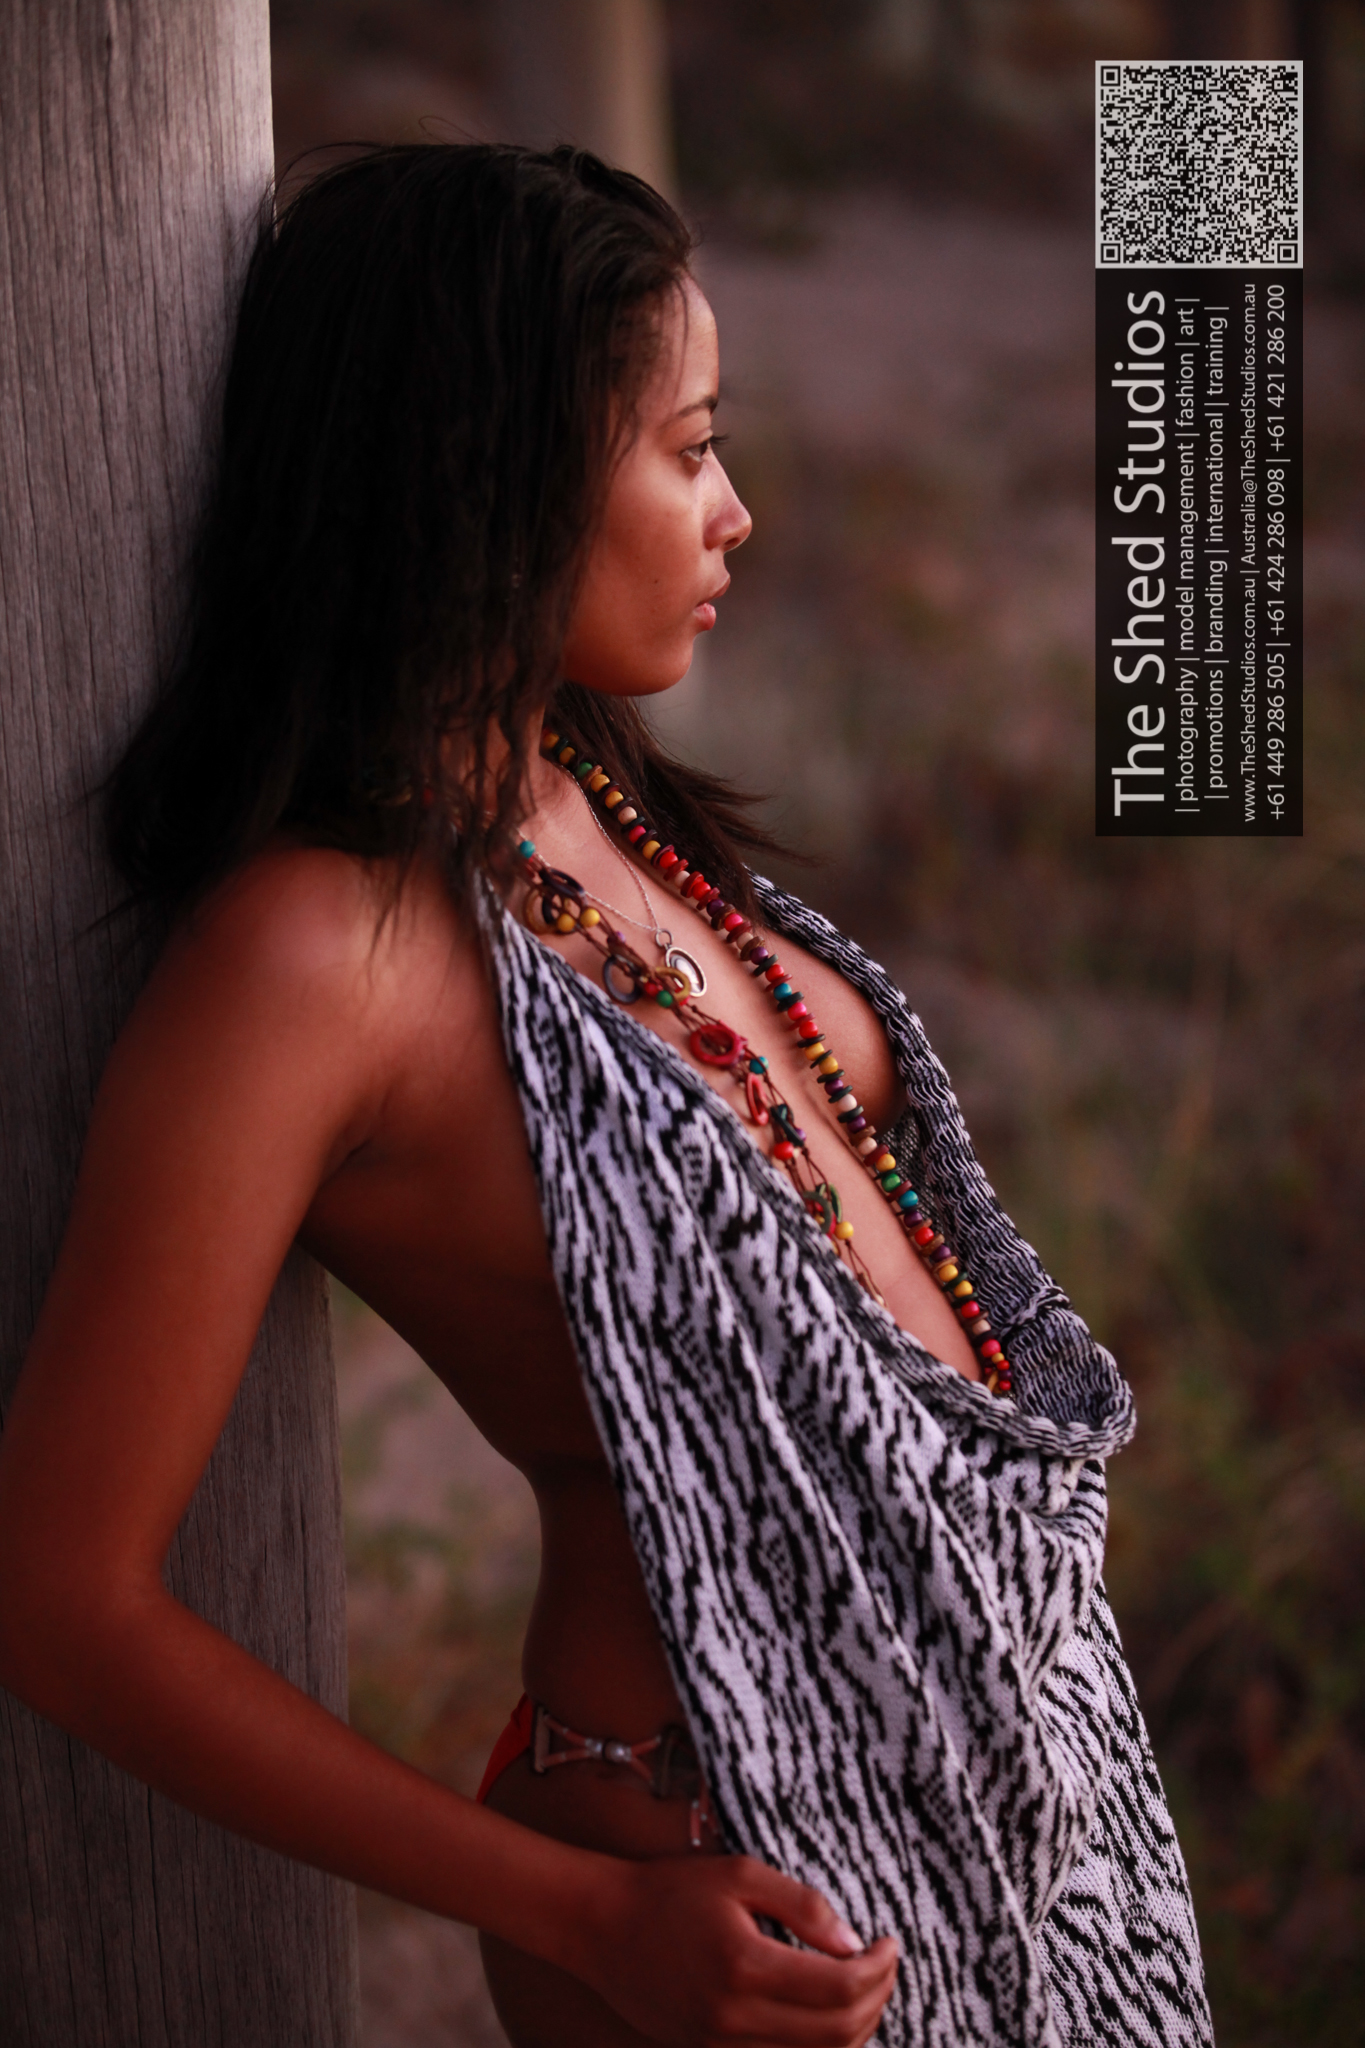 Photography BK @ The Shed studios